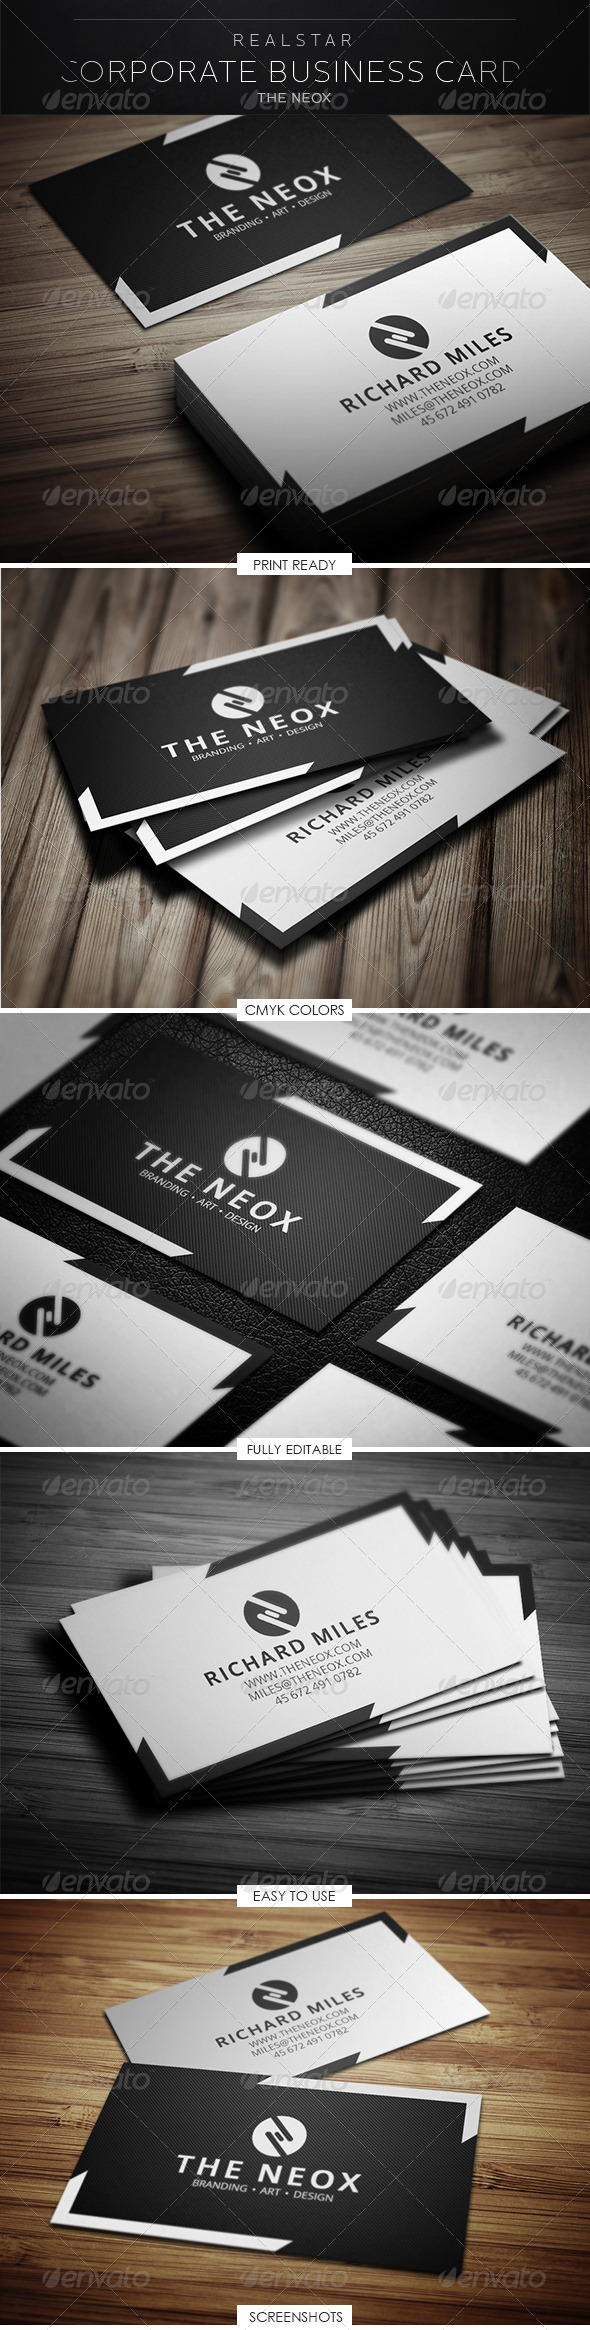 The Neox Corporate Business Card